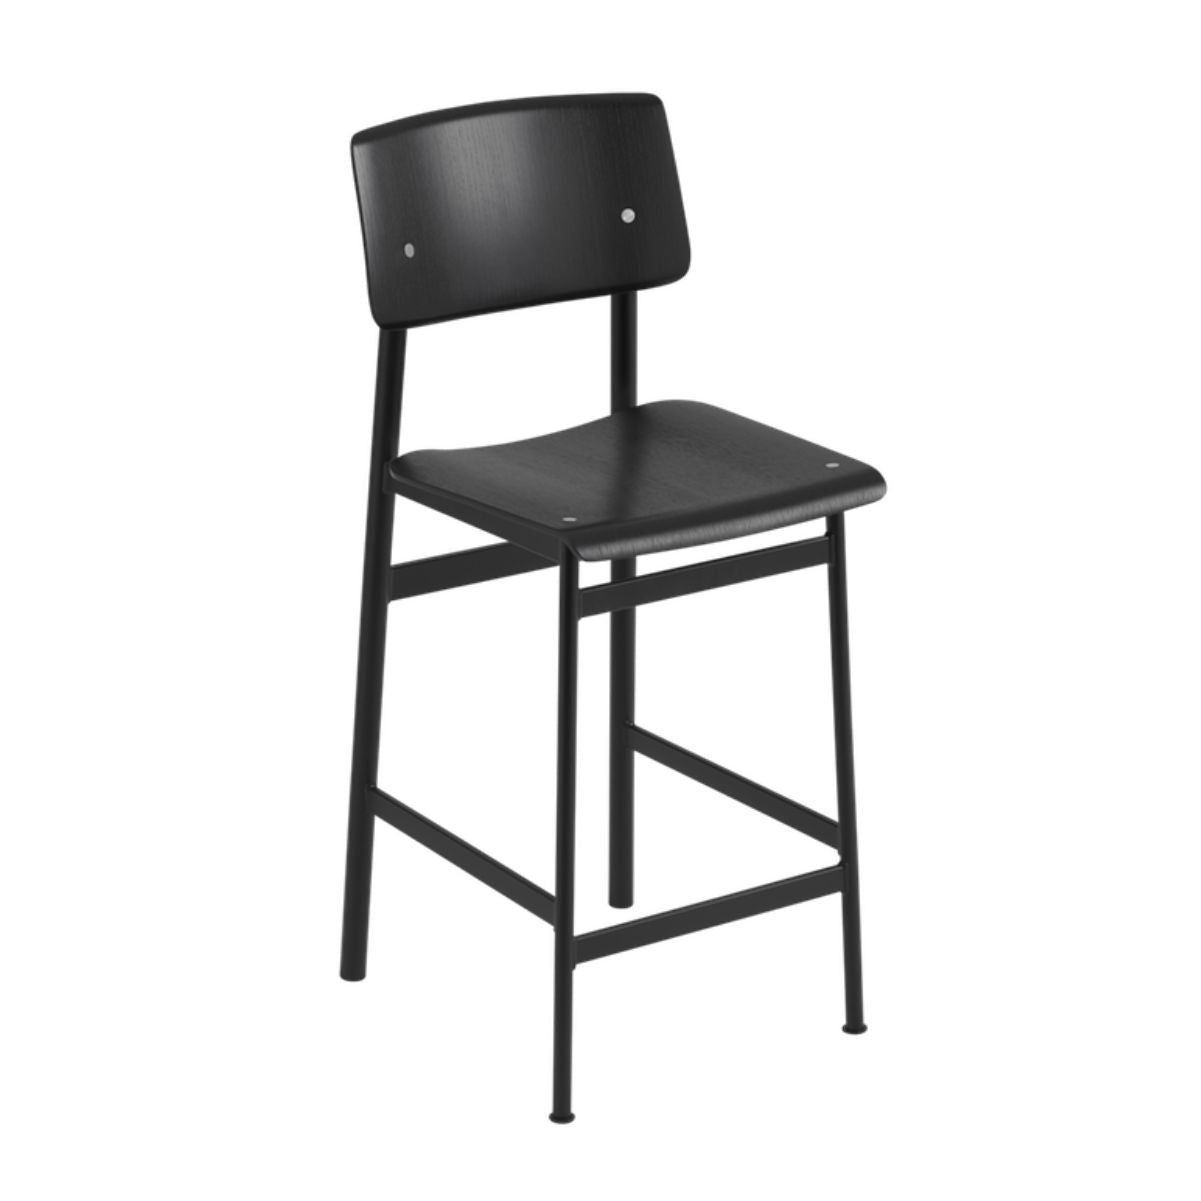 Muuto Loft counter stool 65cm